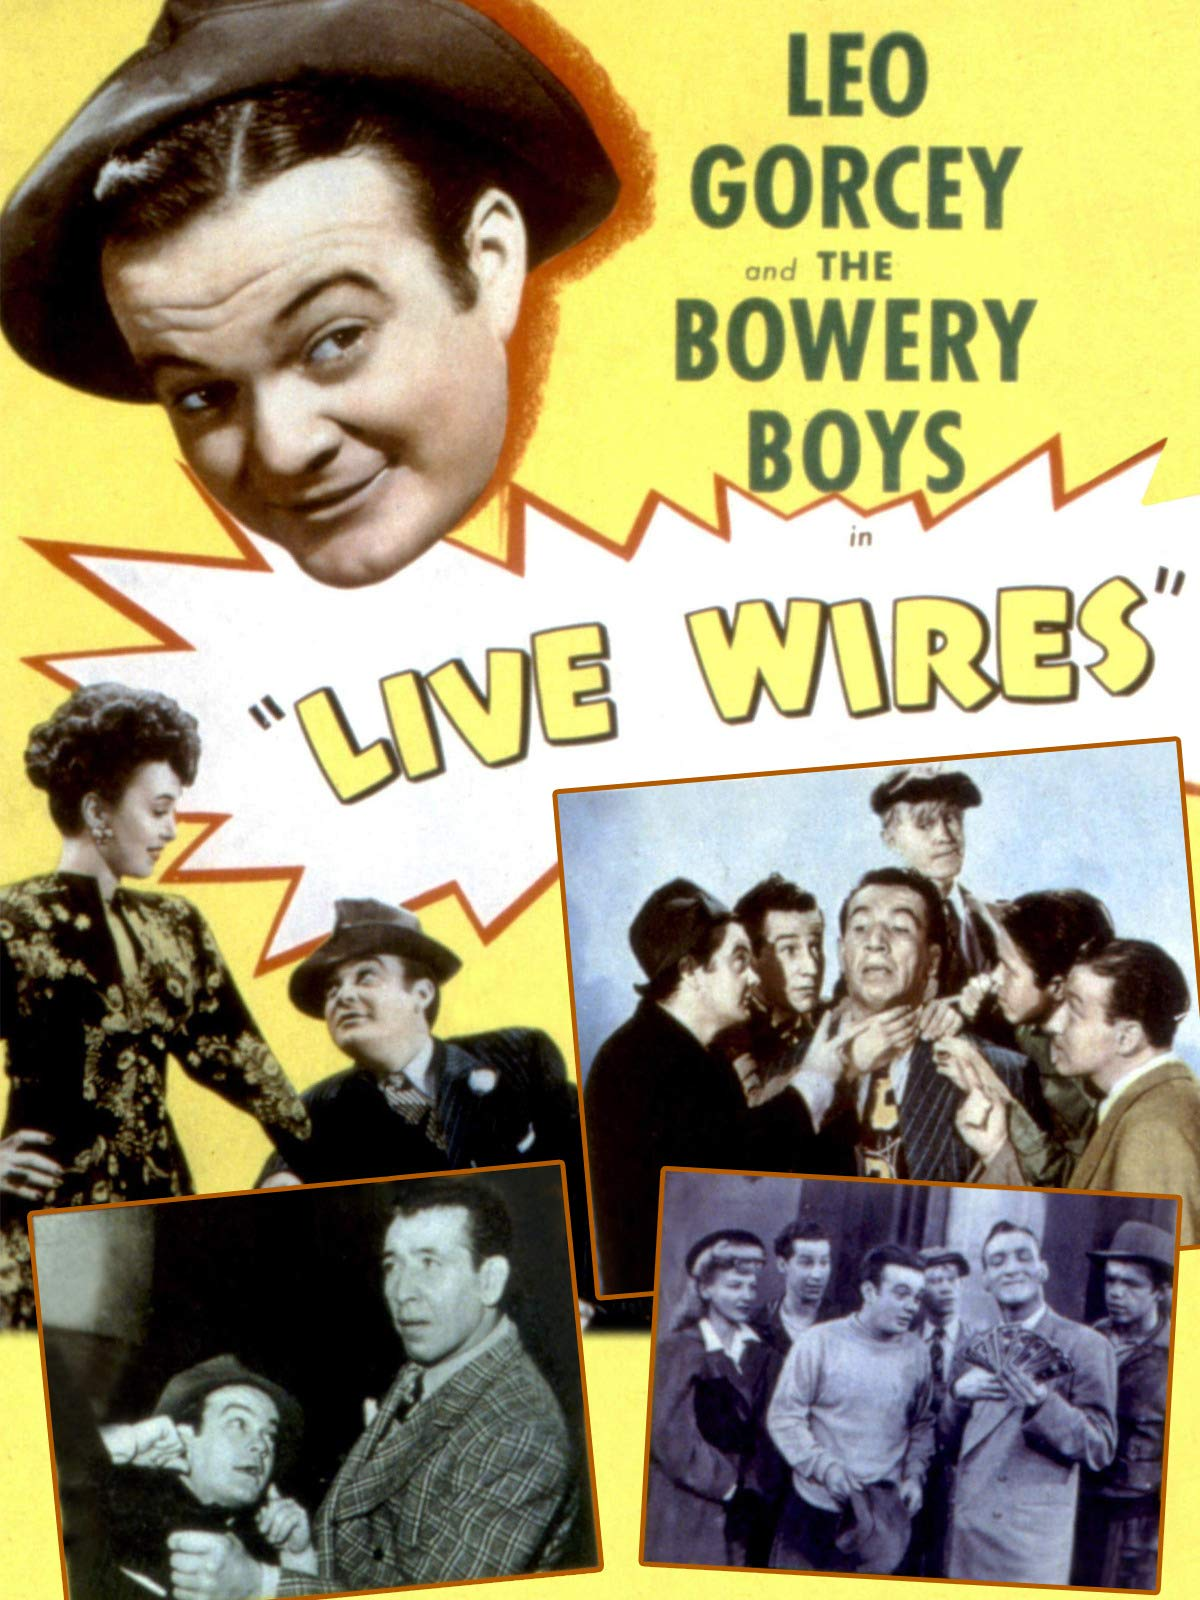 Live Wires - Leo Gorcey & The Bowery Boys